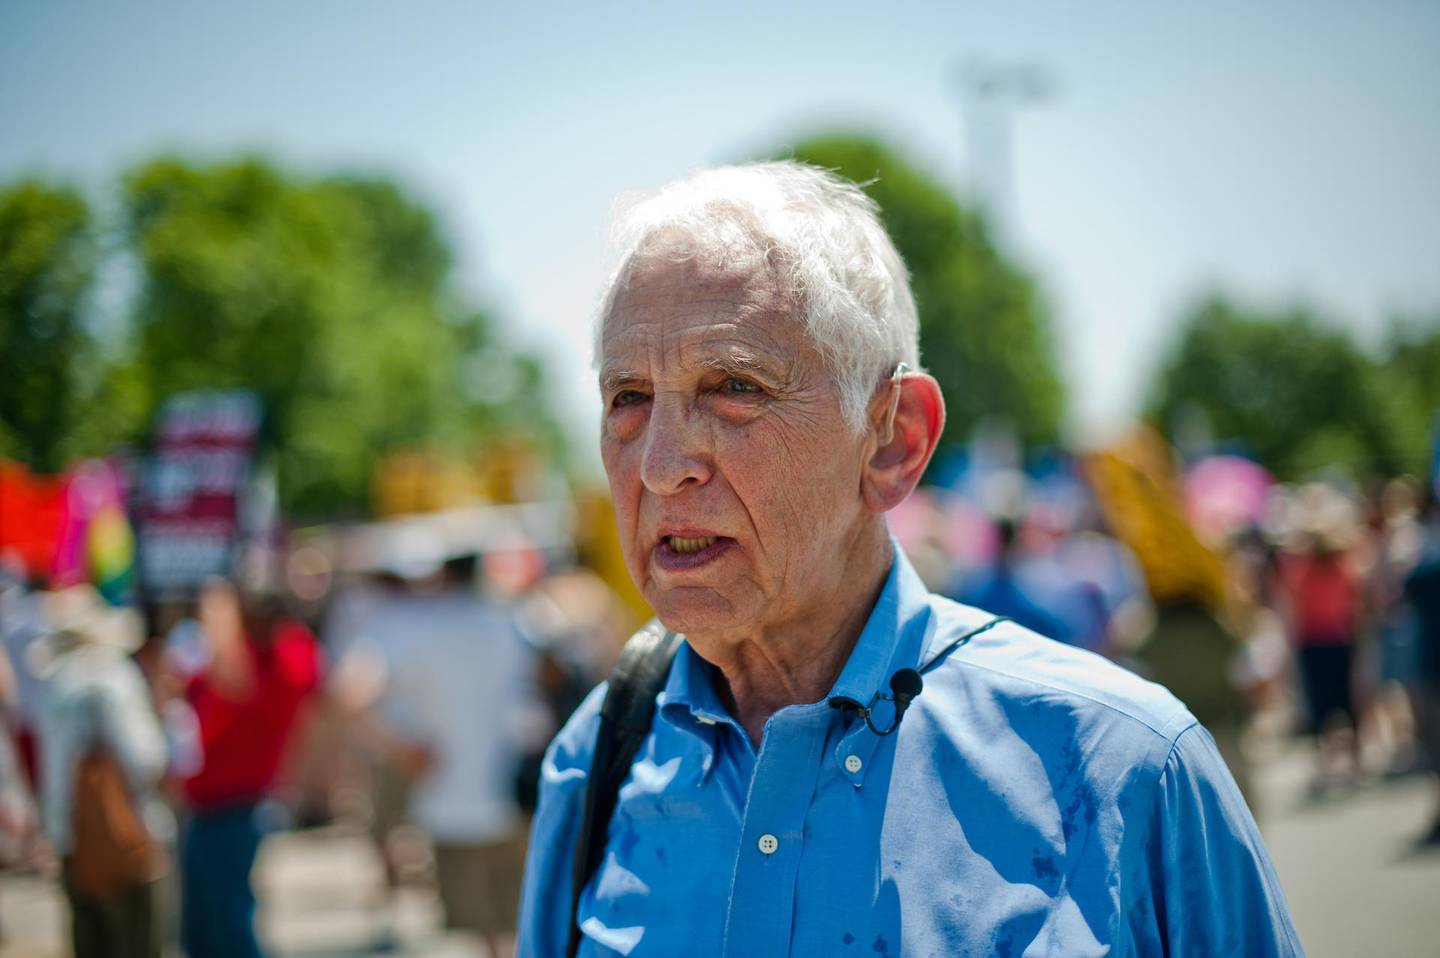 Pentagon Papers whistleblower Daniel Ellsberg attends on June 1, 2013 a demonstration in support of Wikileaks whistleblower US Army Private Bradley Manning at Fort Meade in Maryland, where Manning's court martial will begin on June 3. Some testimony in the espionage trial of a US soldier who passed secret files to WikiLeaks will be held behind closed doors to safeguard classified information, a US judge ruled last month. The decision by Colonel Denise Lind, the military judge presiding over the case, is sure to spark renewed criticism from civil liberties groups who say the Manning case has been shrouded in excessive secrecy.    AFP PHOTO/Nicholas KAMM / AFP PHOTO / NICHOLAS KAMM